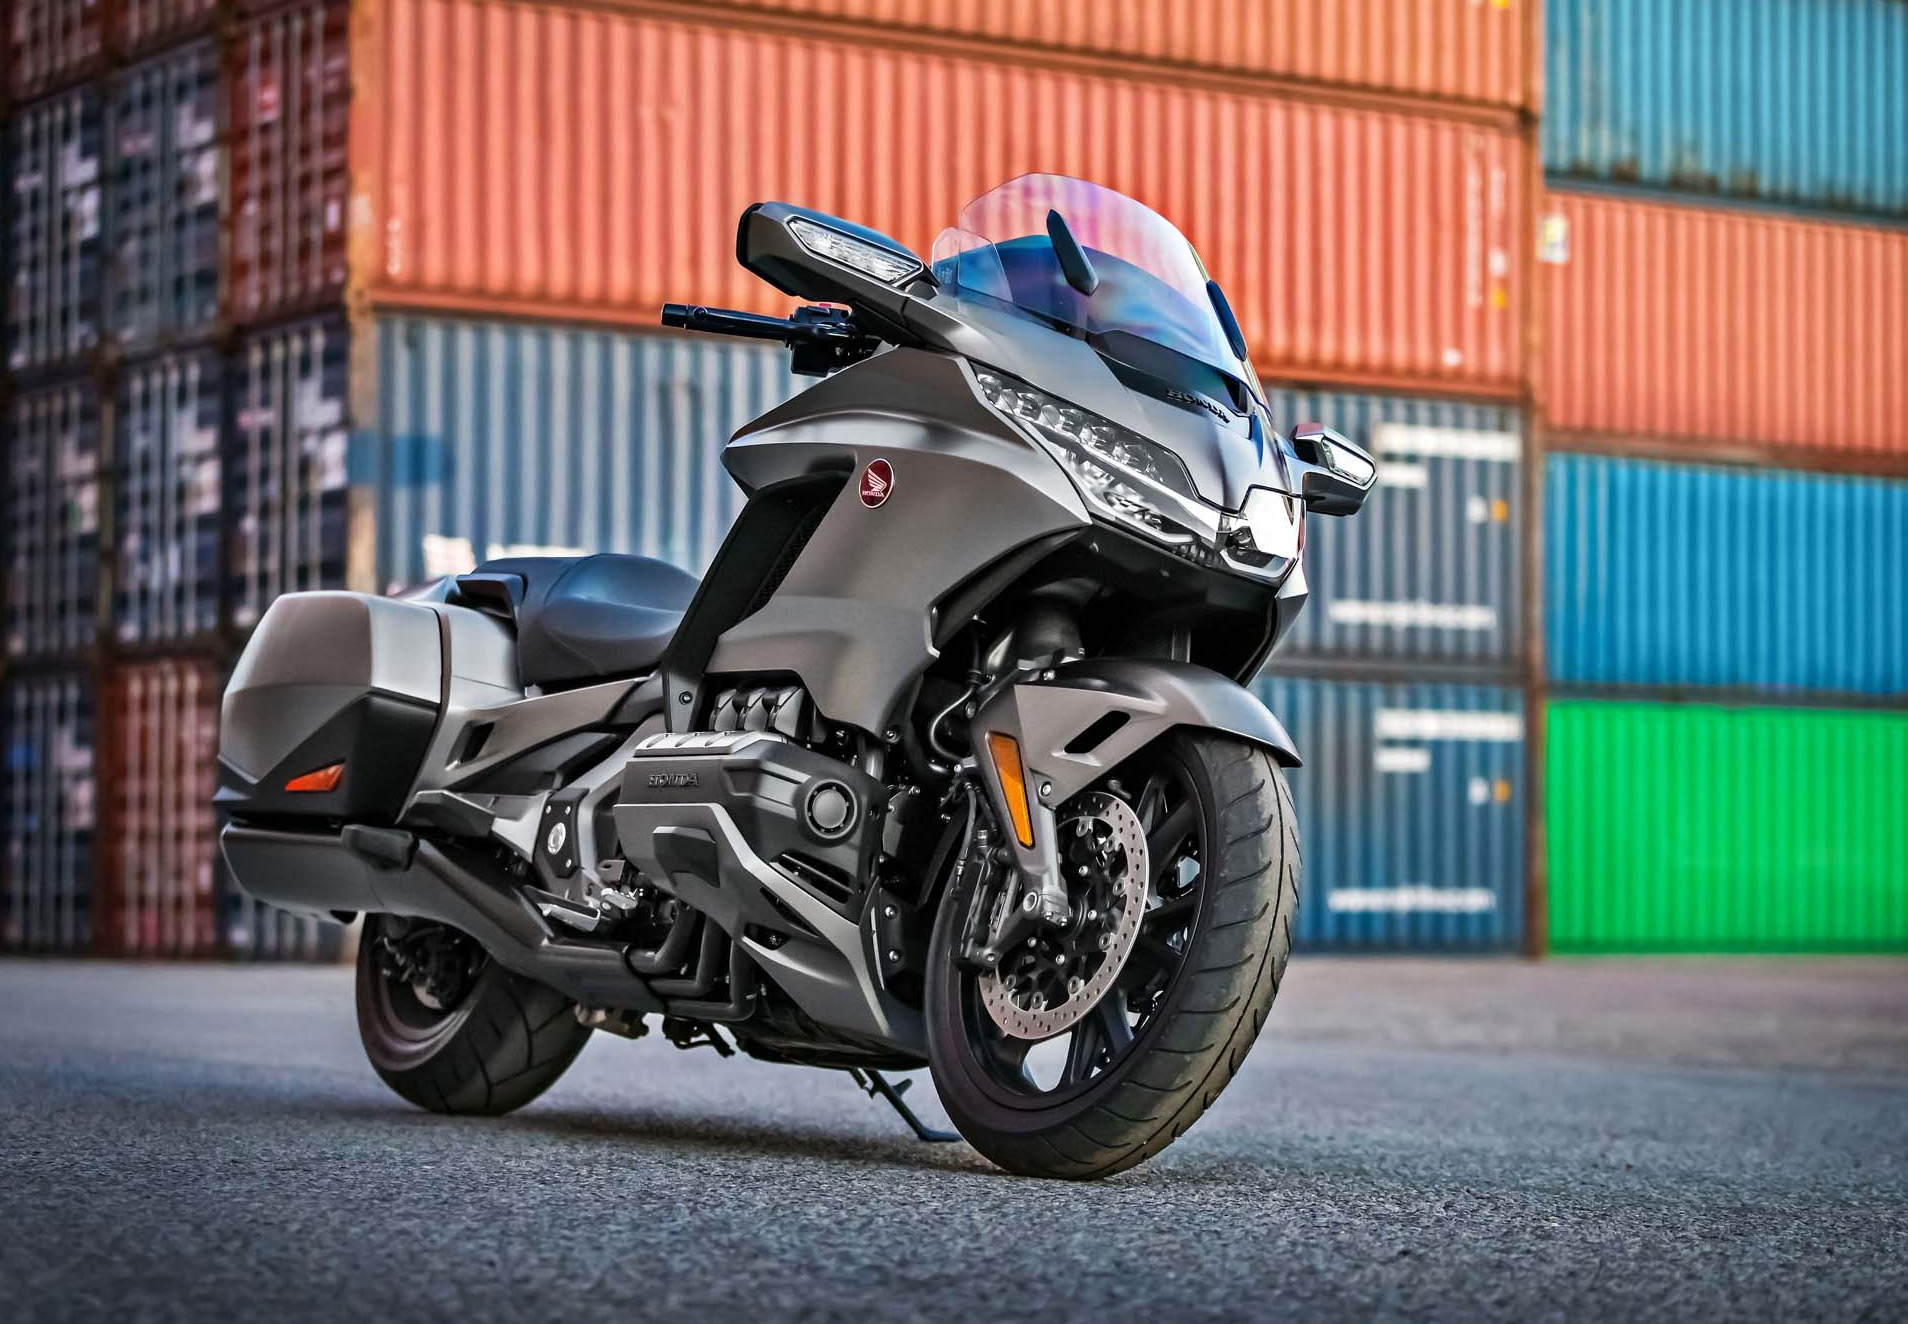 all new 2018 honda gold wing unveiled with video motorcycle news. Black Bedroom Furniture Sets. Home Design Ideas